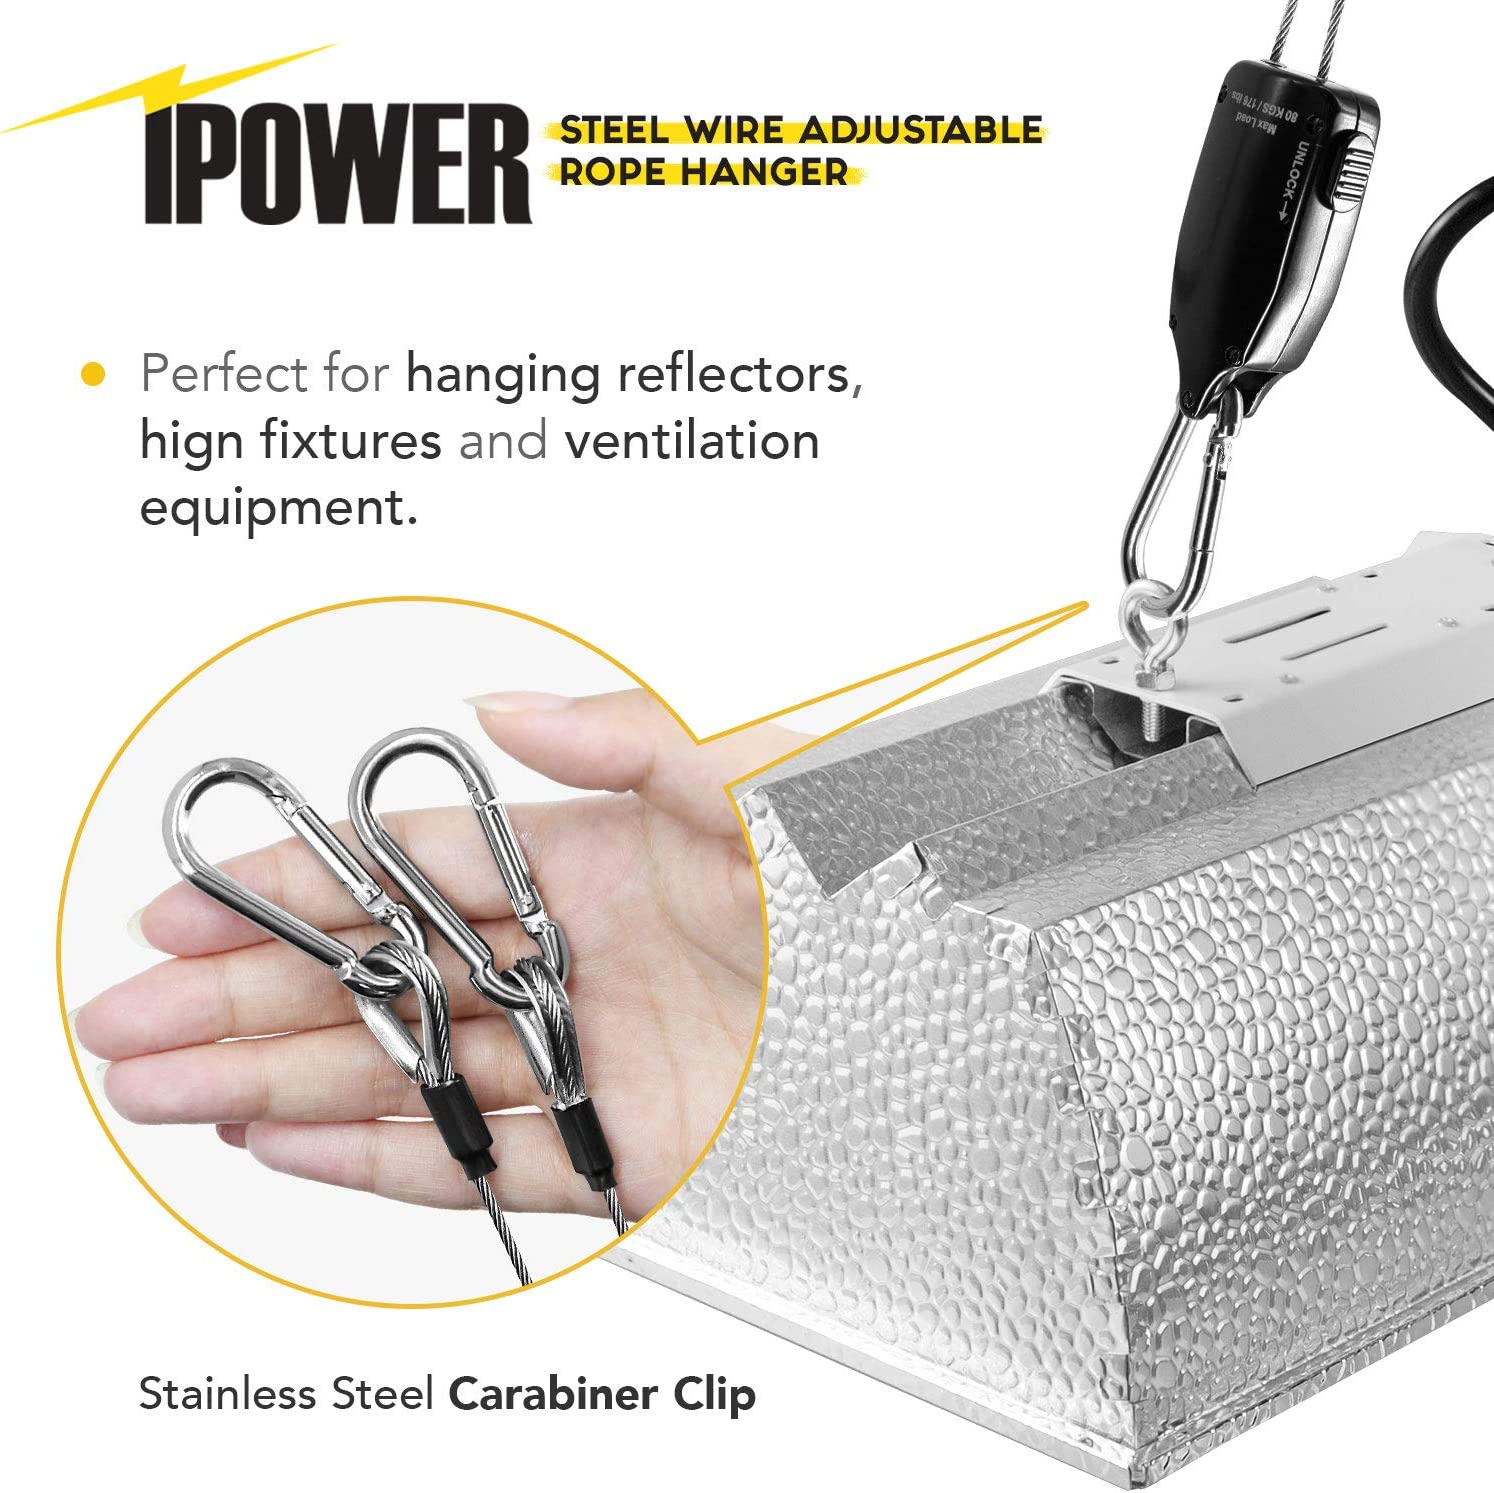 iPower GLROPESTWI 1-Pack 4.9-Feet Long Steel Wire Heavy Duty Adjustable Grow Light Rope Clip Hanger Black 176lbs Weight Capacity